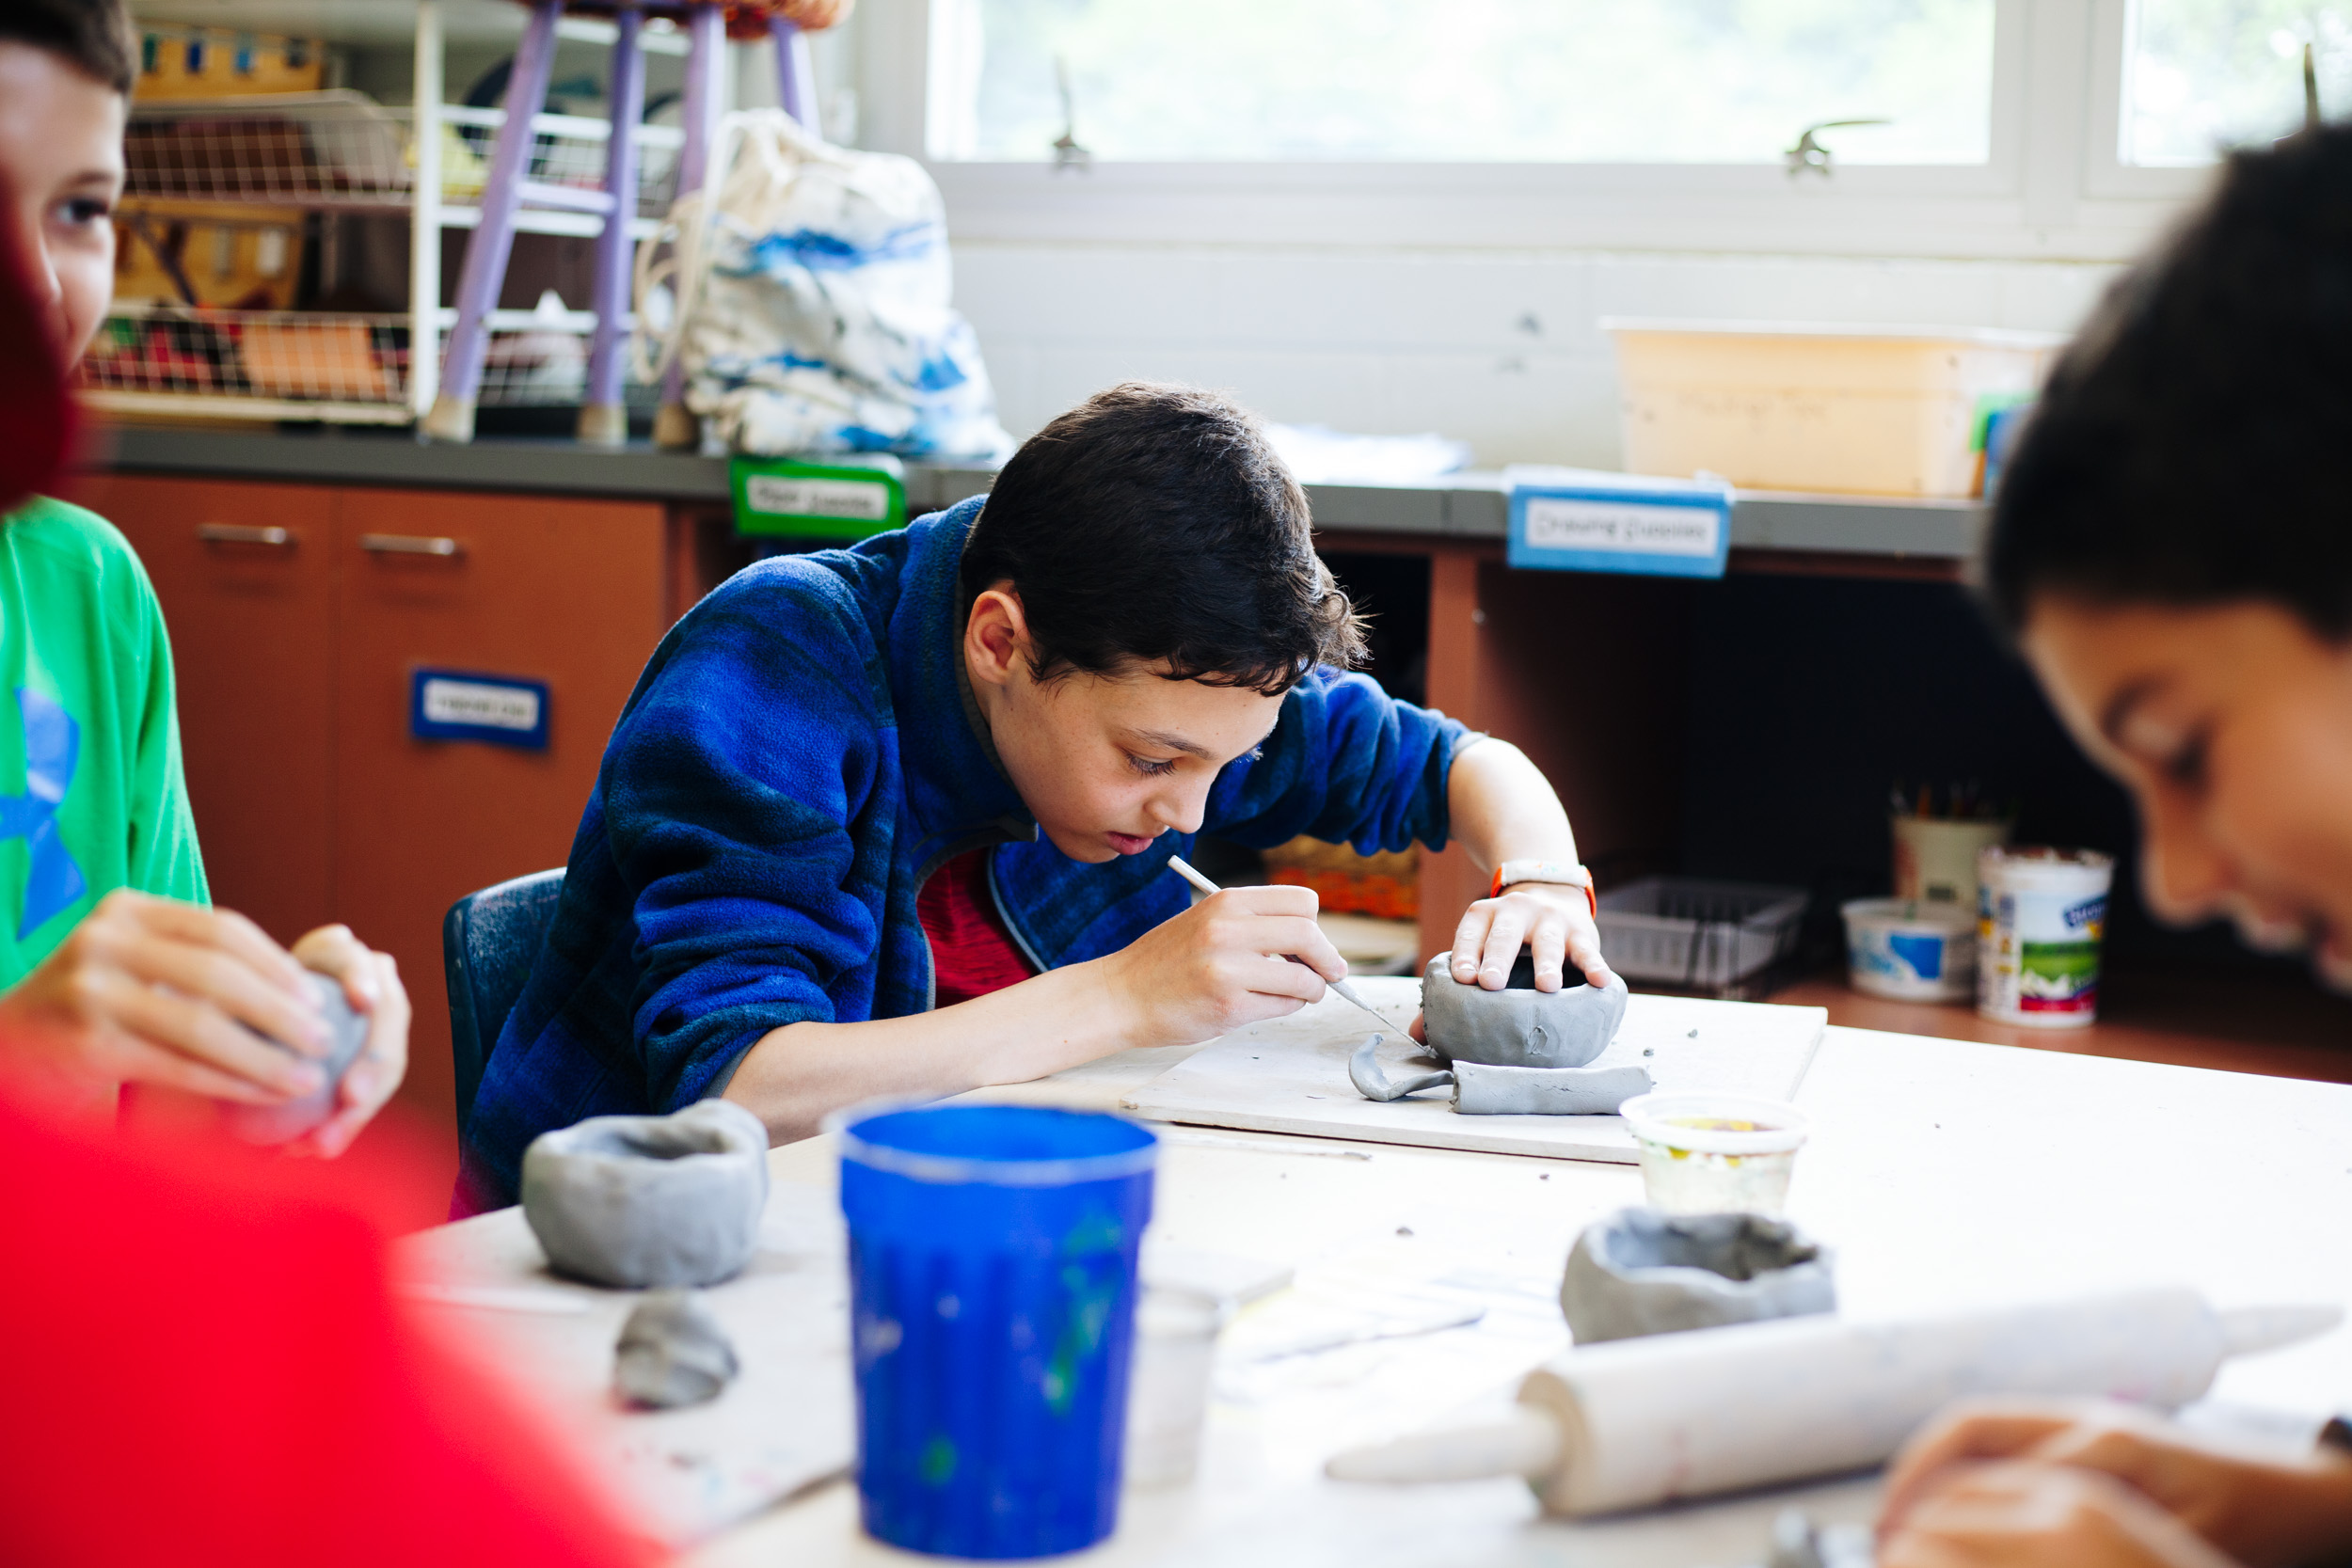 Campers making ceramic bowls with clay